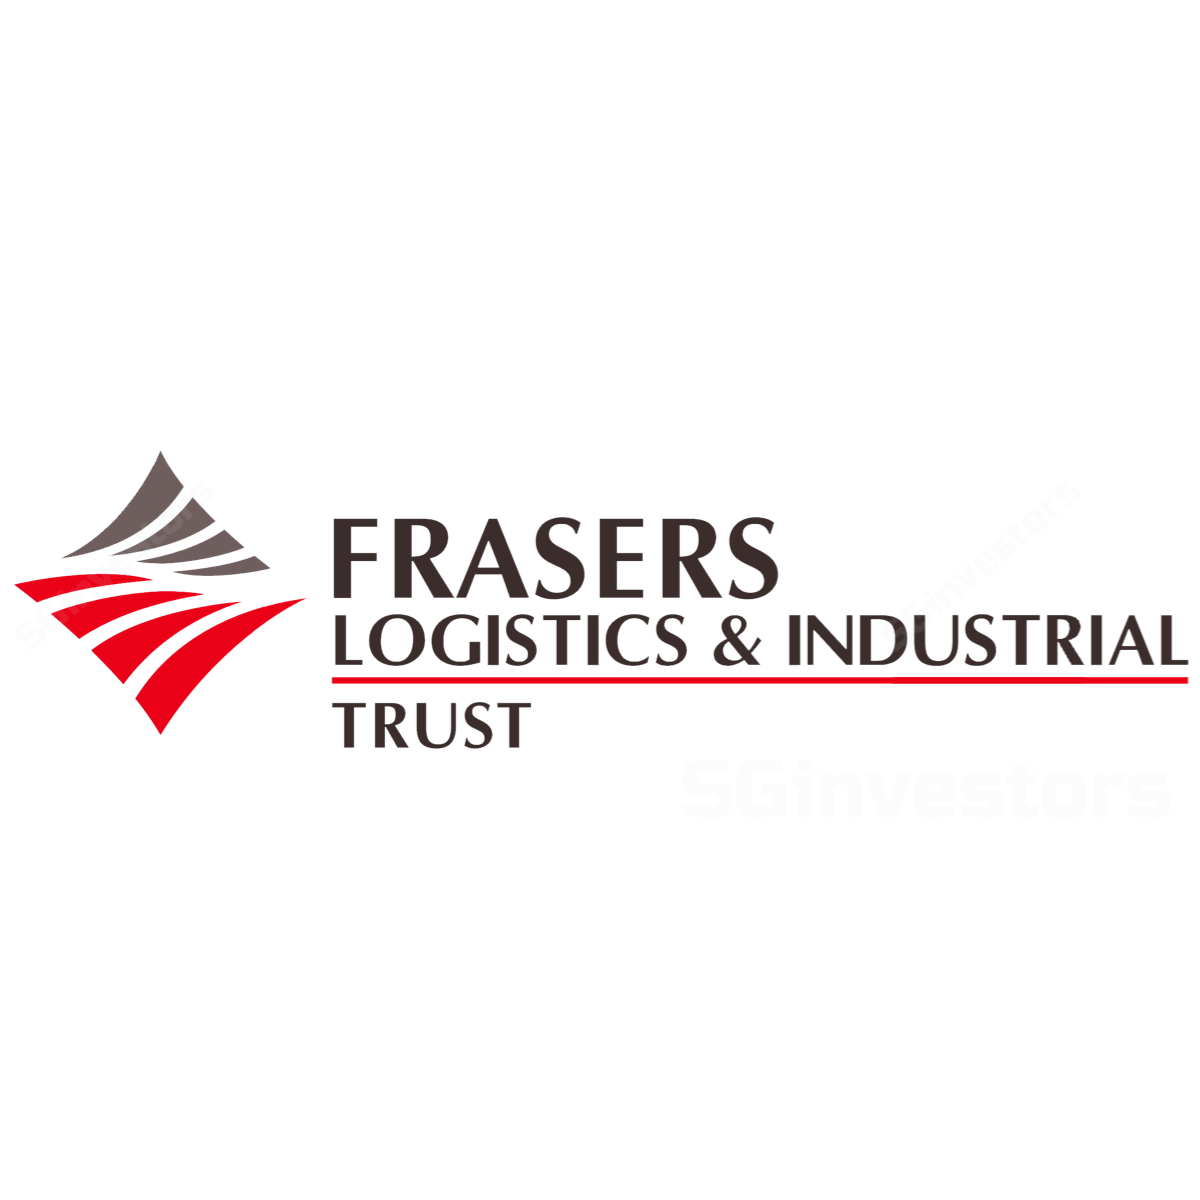 Frasers Logistics & Industrial Trust - CIMB Research 2017-10-09: Why You Can Keep FLT In Your Pocket